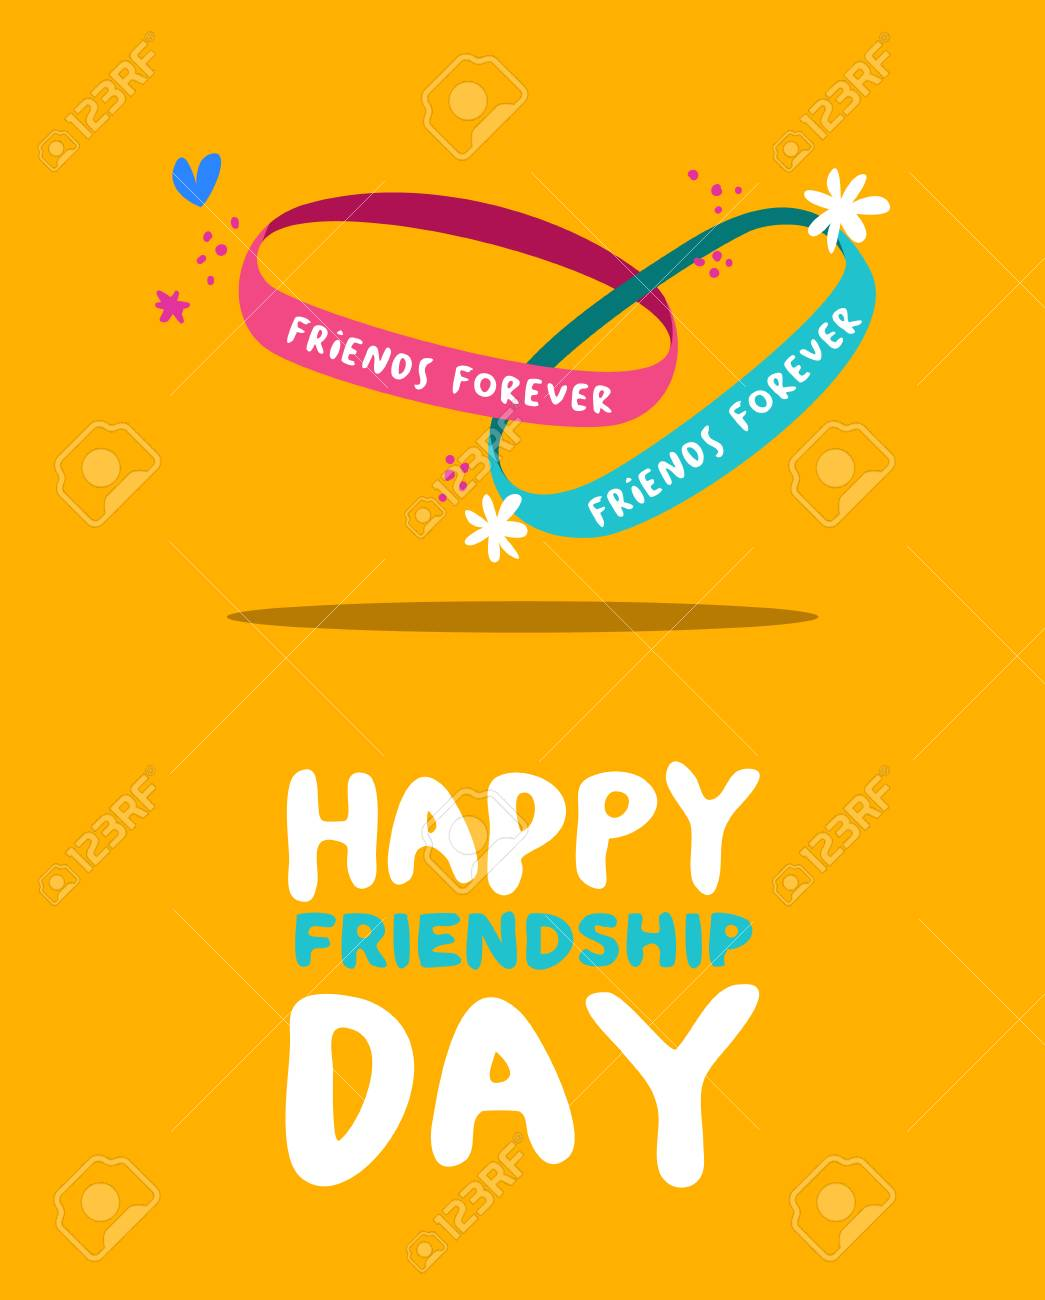 Happy Friendship Day Greeting Card For ...